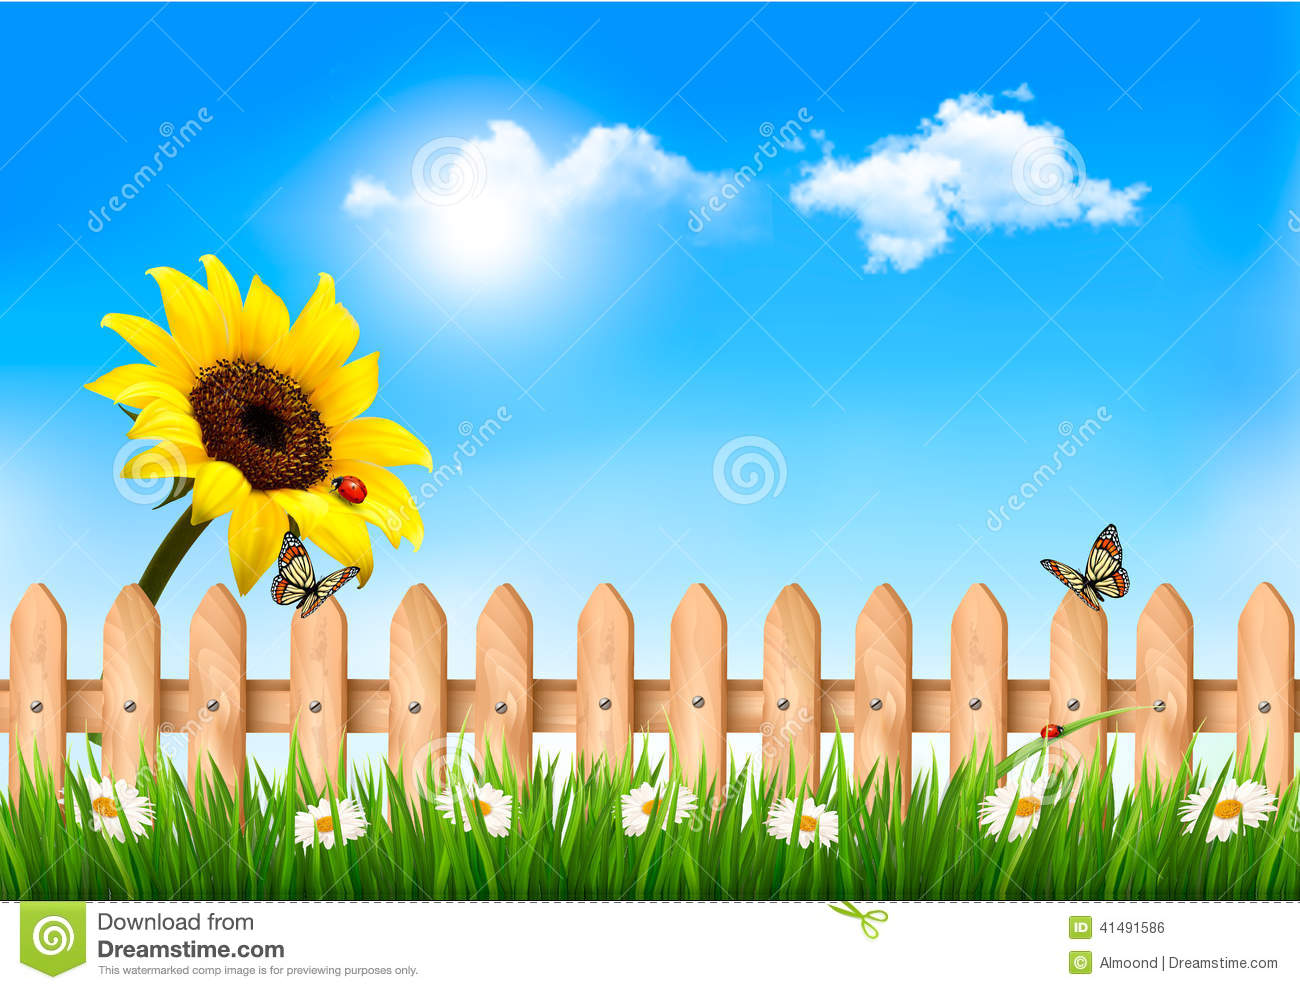 Nechar Wallpaper 3d Summer Nature Background With Sunflower And Wooden Fence